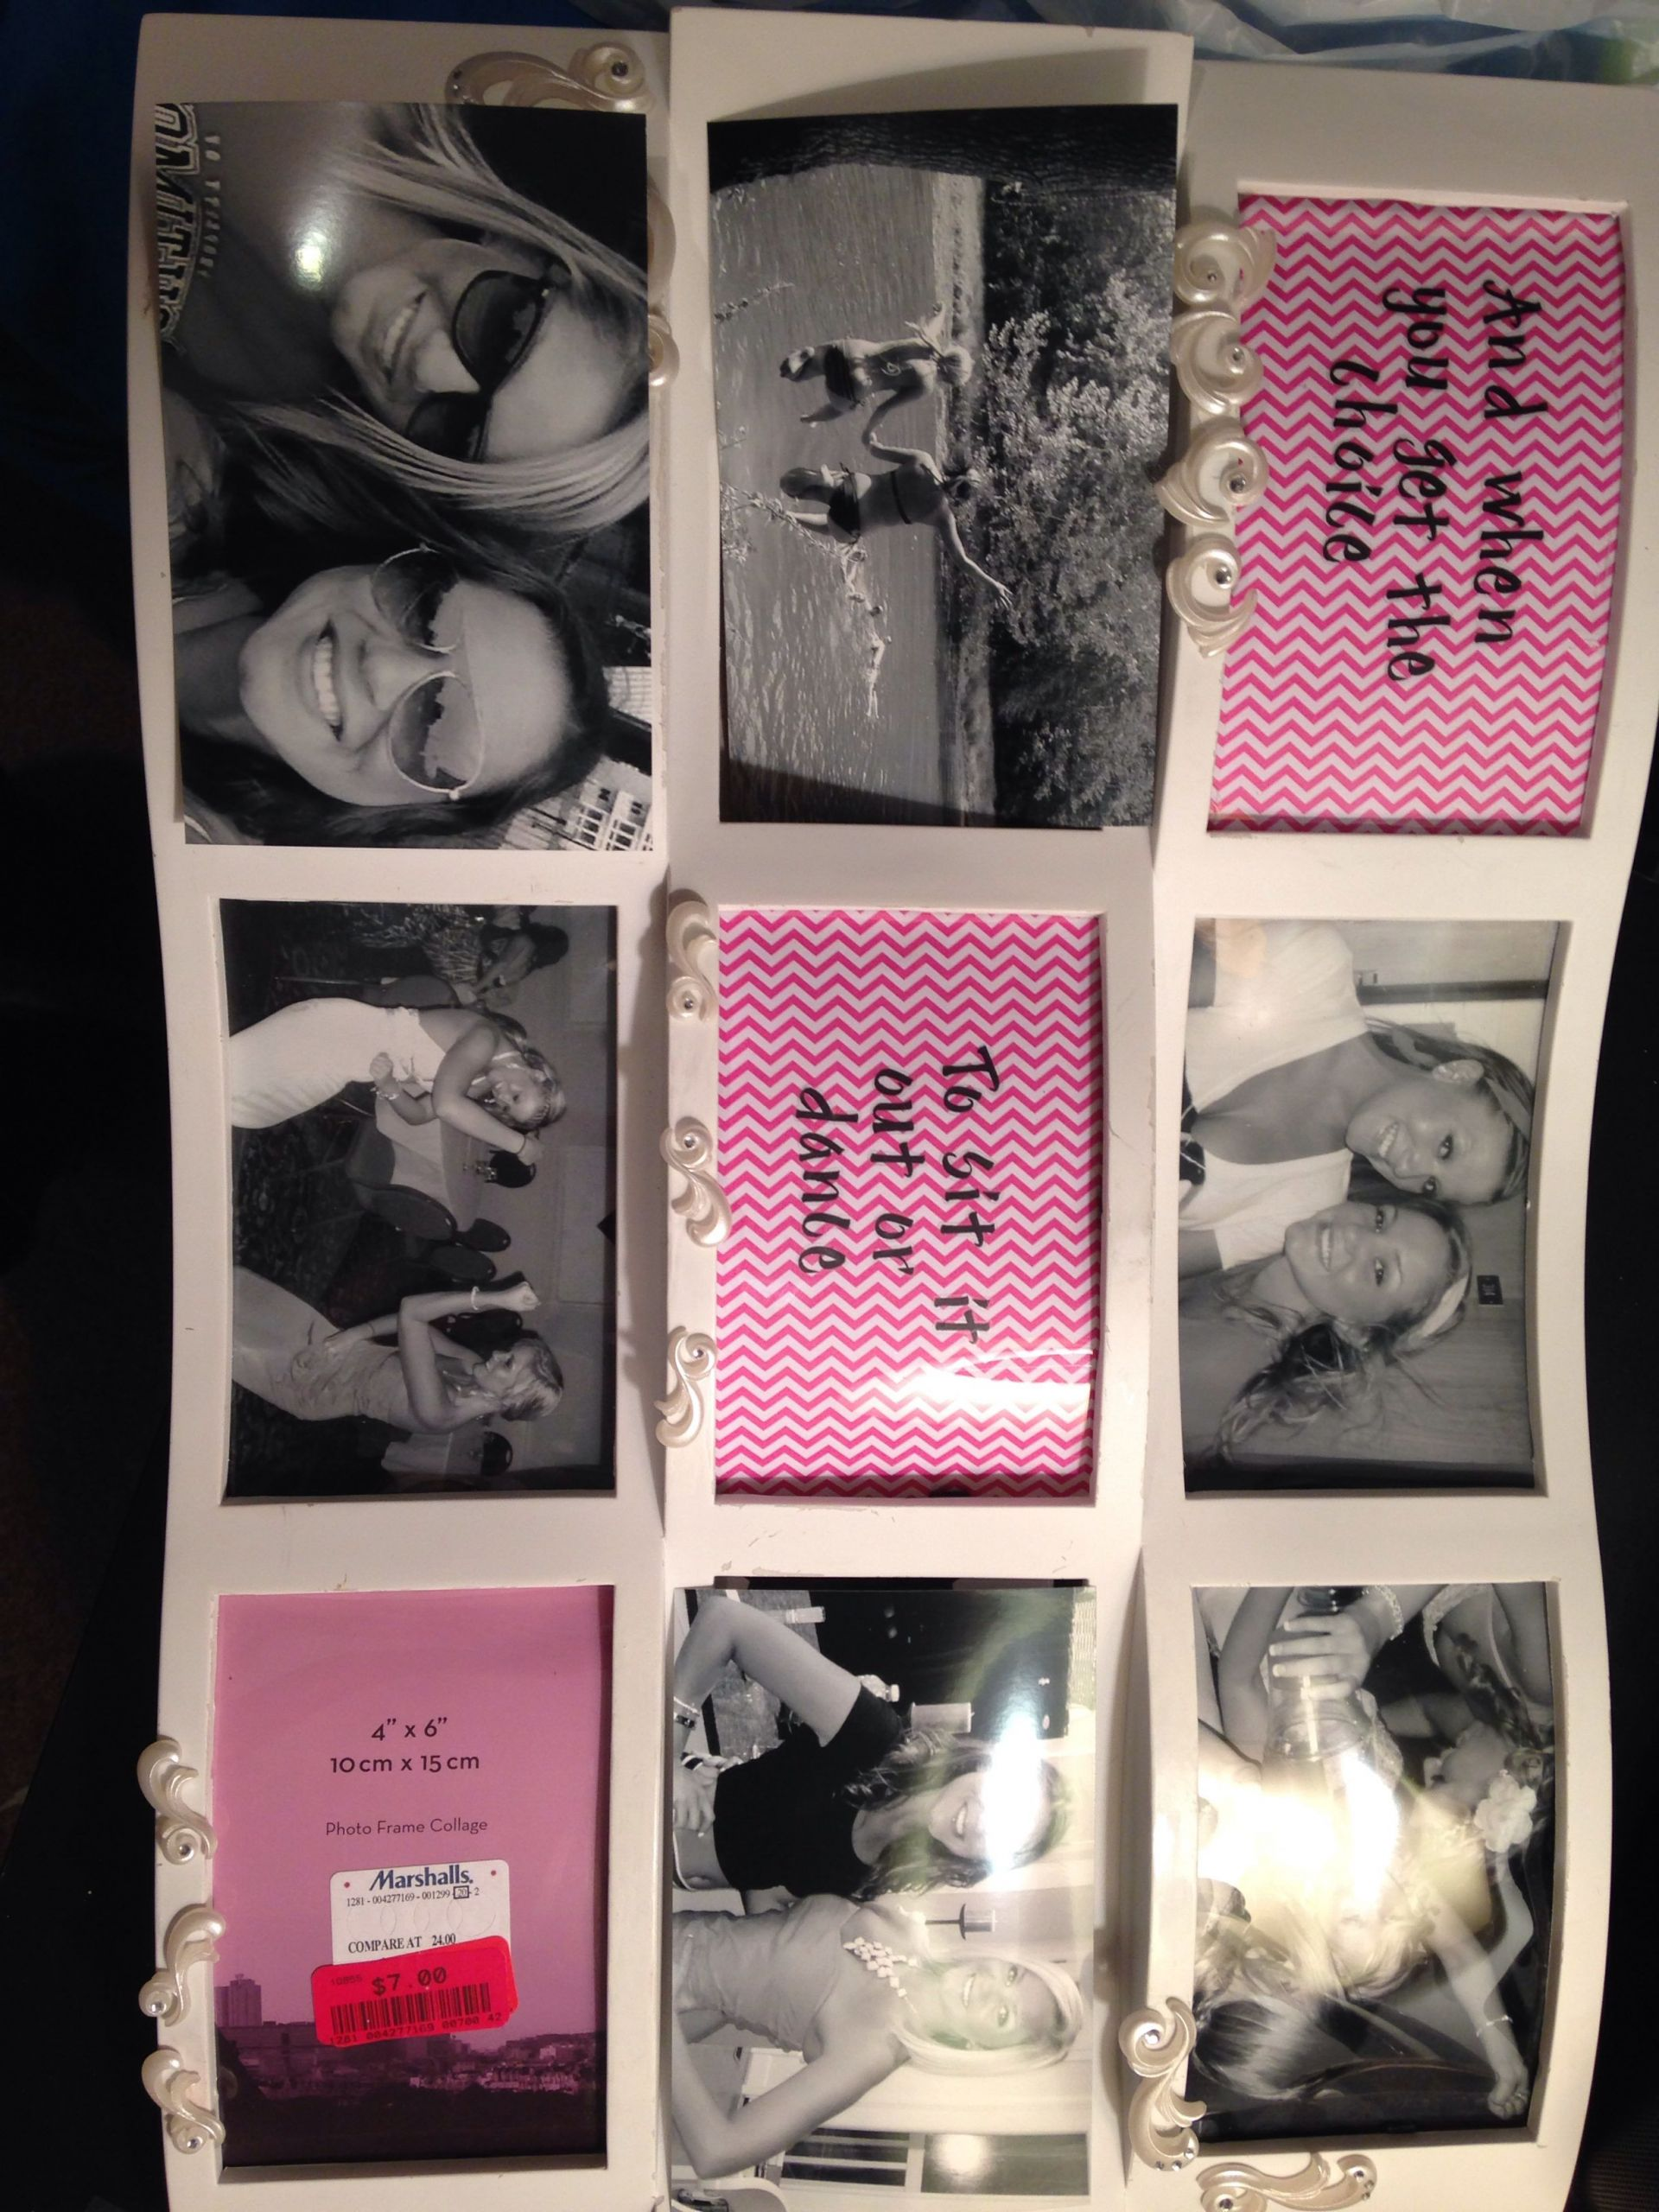 Friends Graduation Gift Ideas  DIY picture frame collage graduation t to my best